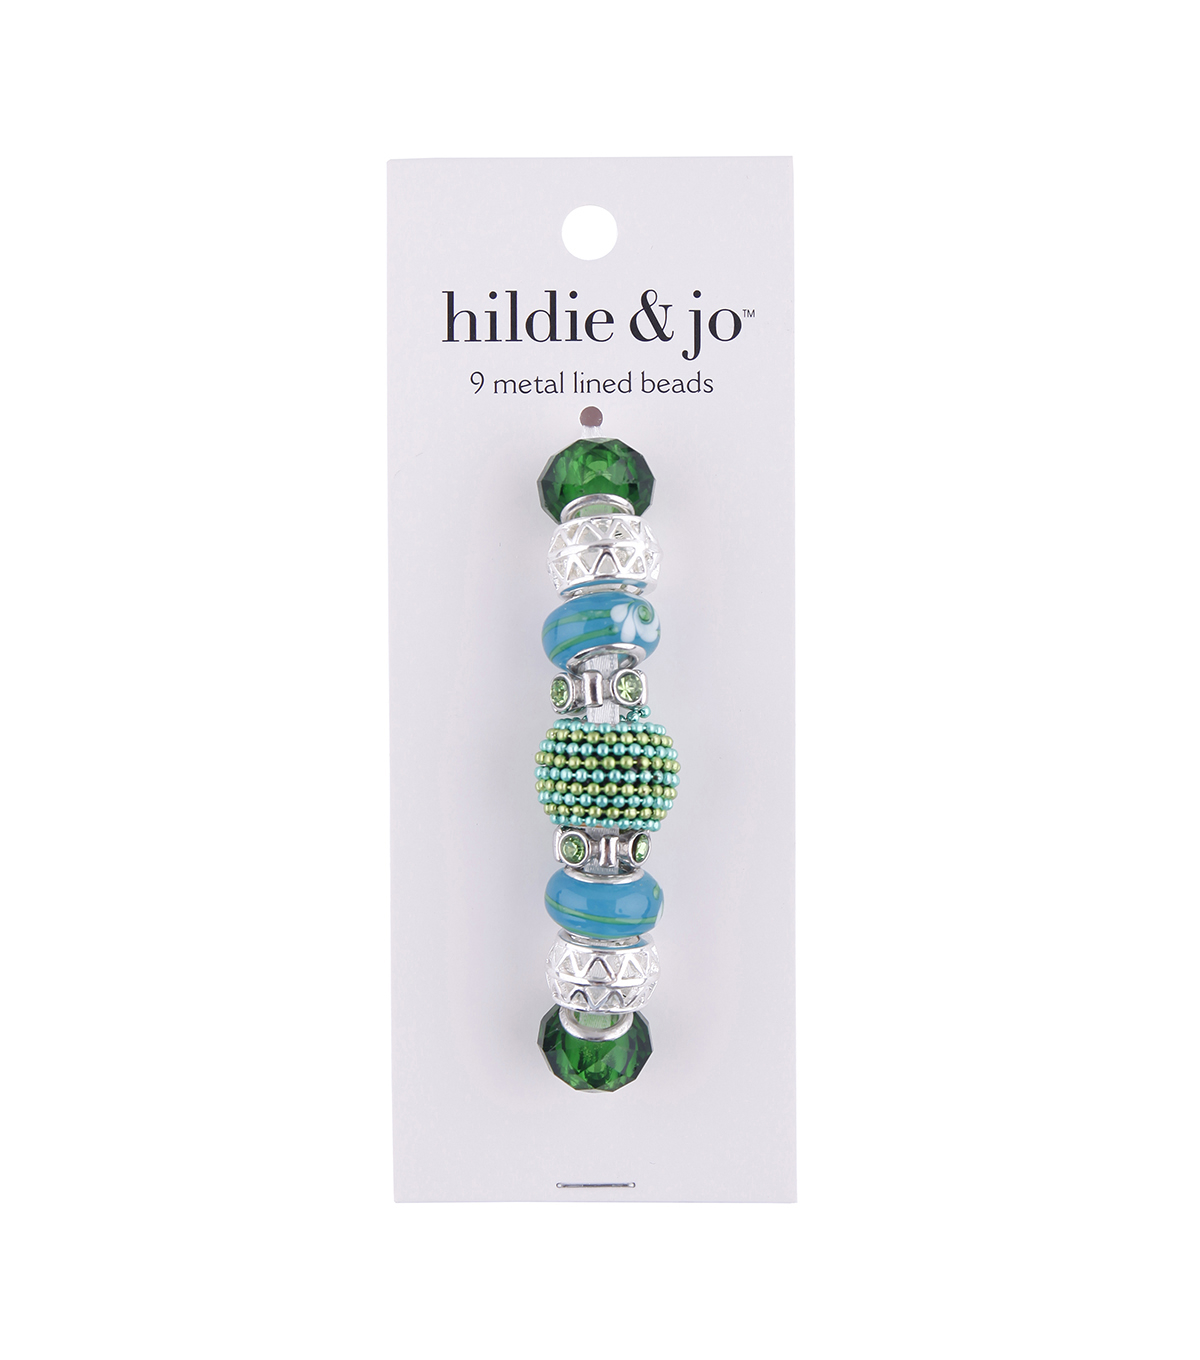 hildie & jo™ Mix & Mingle Metal Lined Glass Beads-Green & Blue